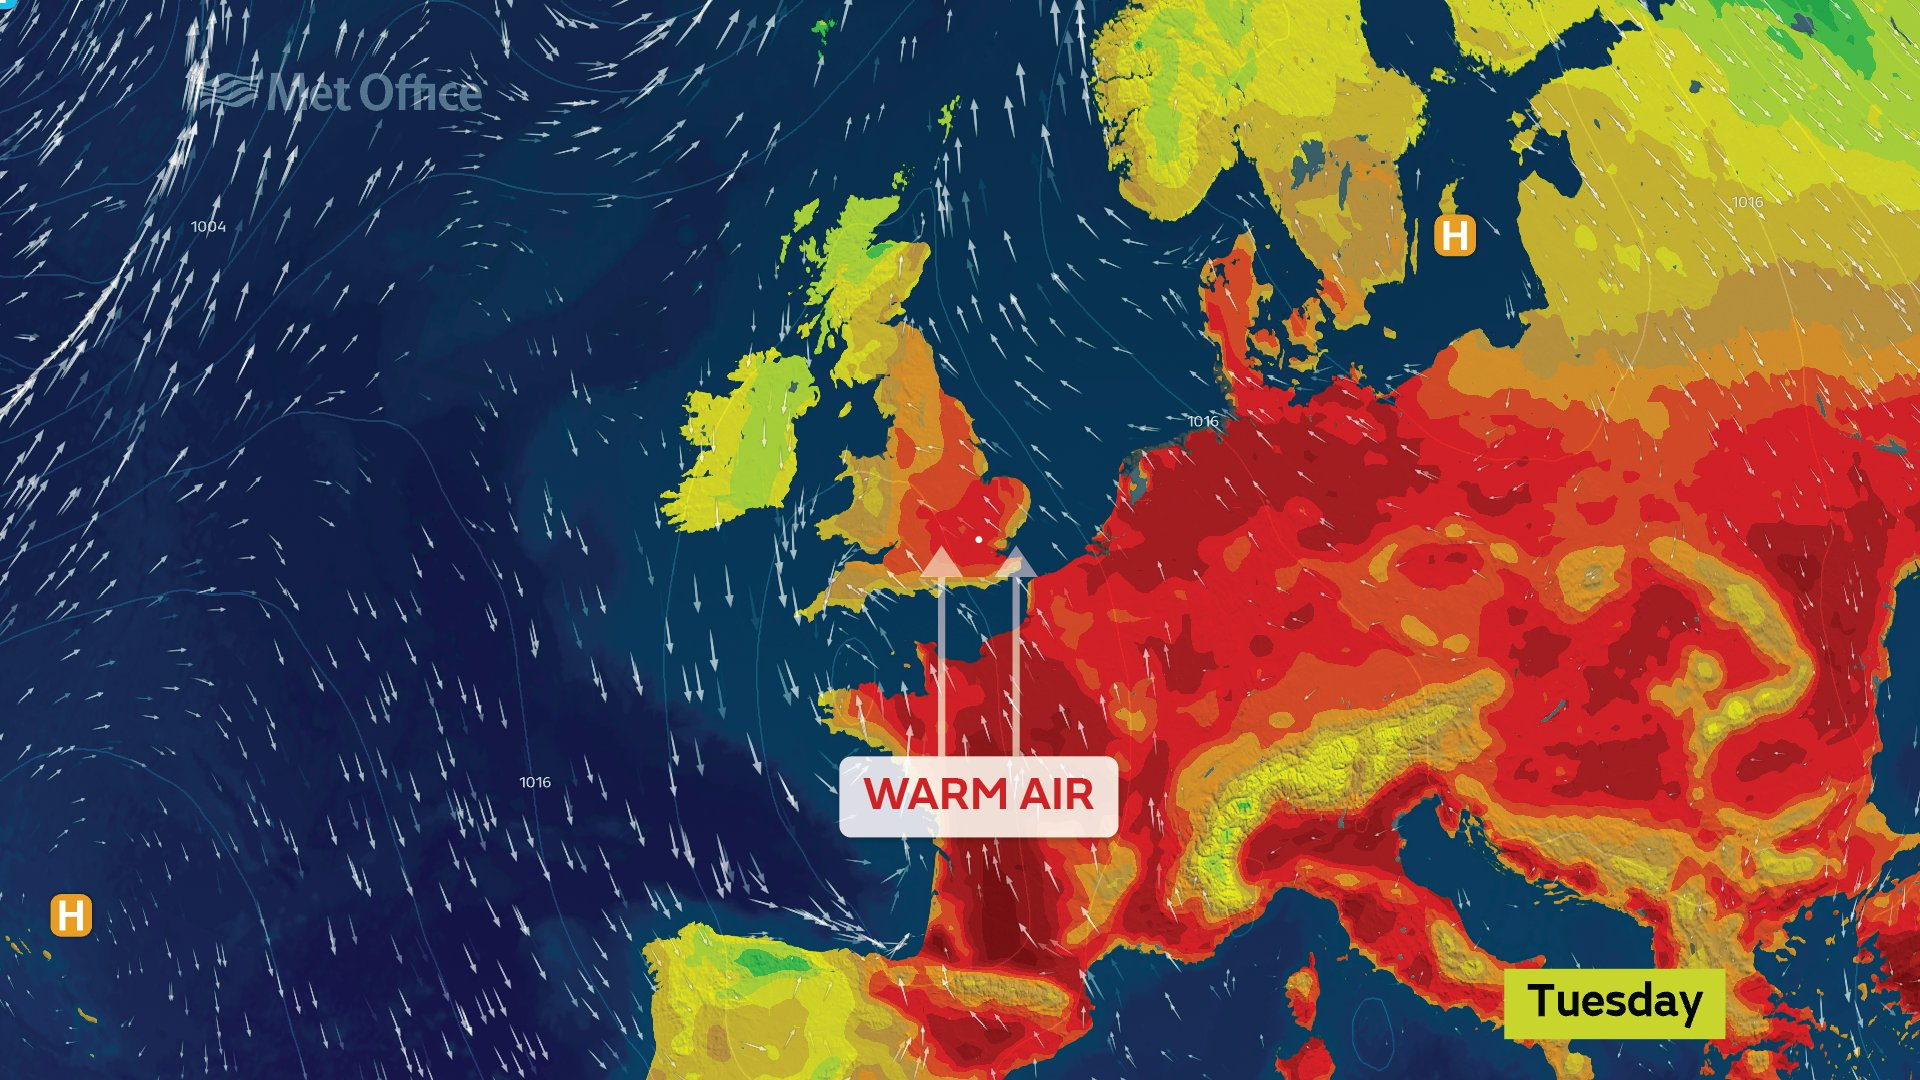 An Indian summer is bringing hot air and high temperatures to the UK today